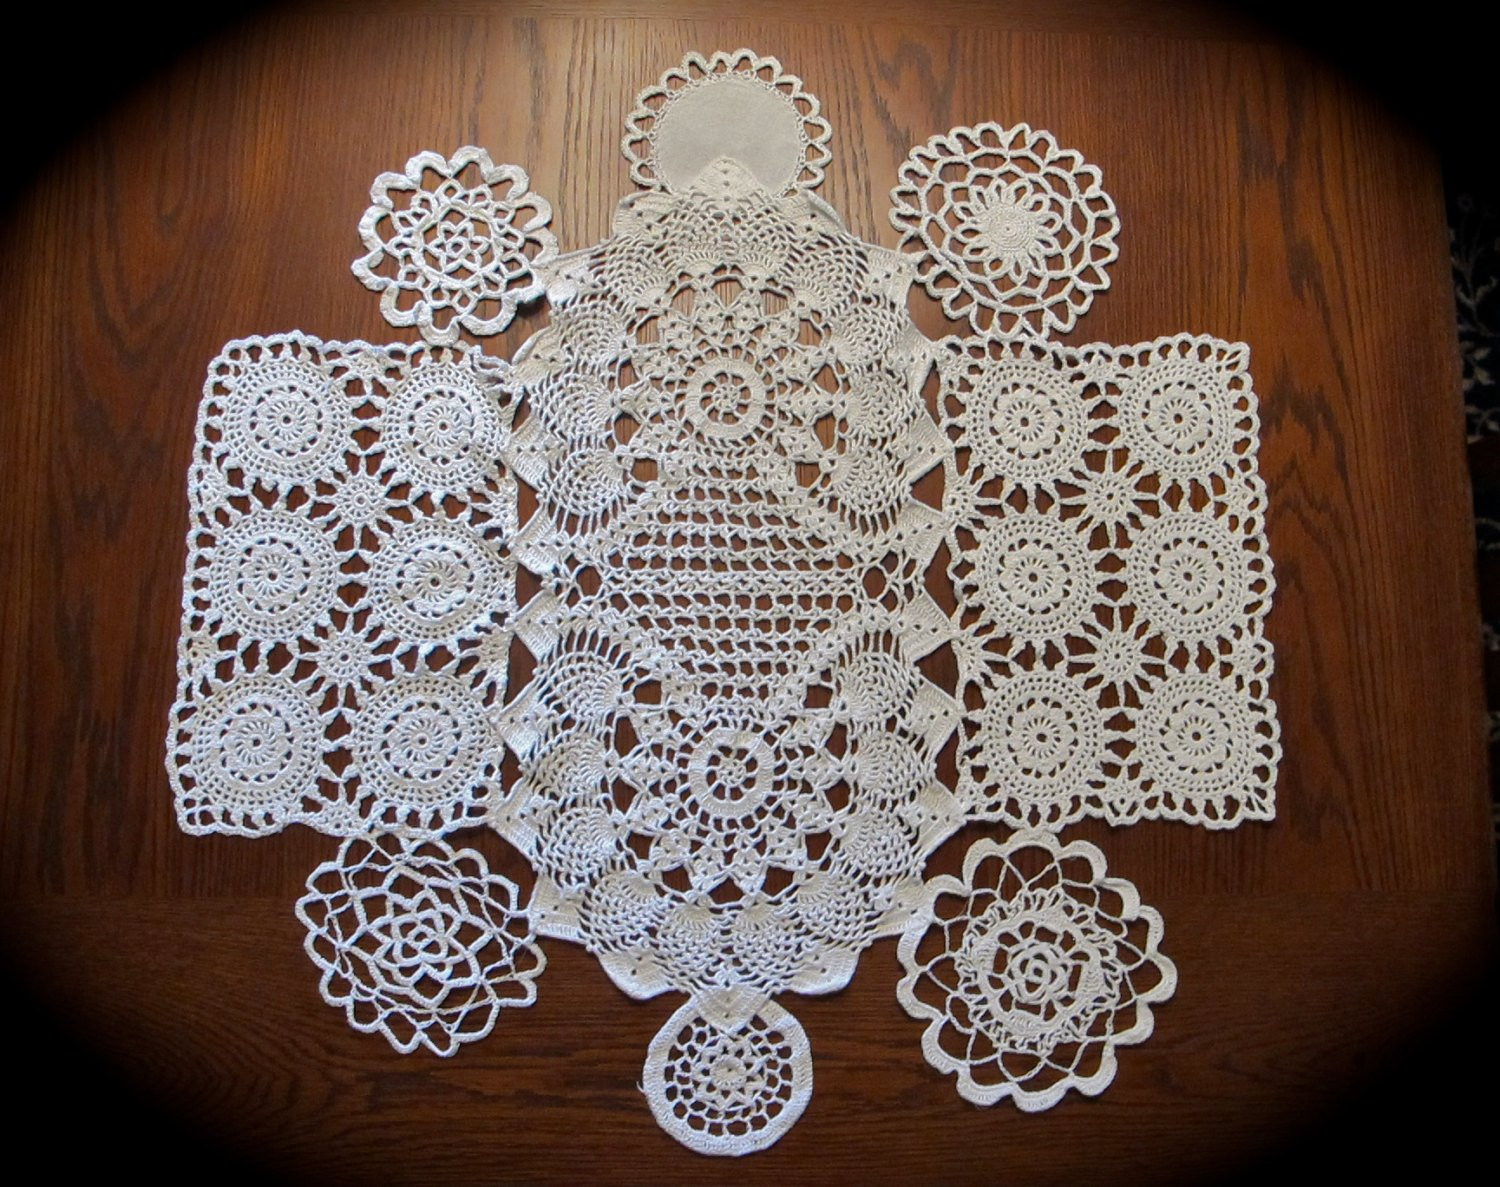 White Doilies Beautiful White Doilies Lace Round Table topper for Weddings 30 Of Awesome 41 Photos White Doilies